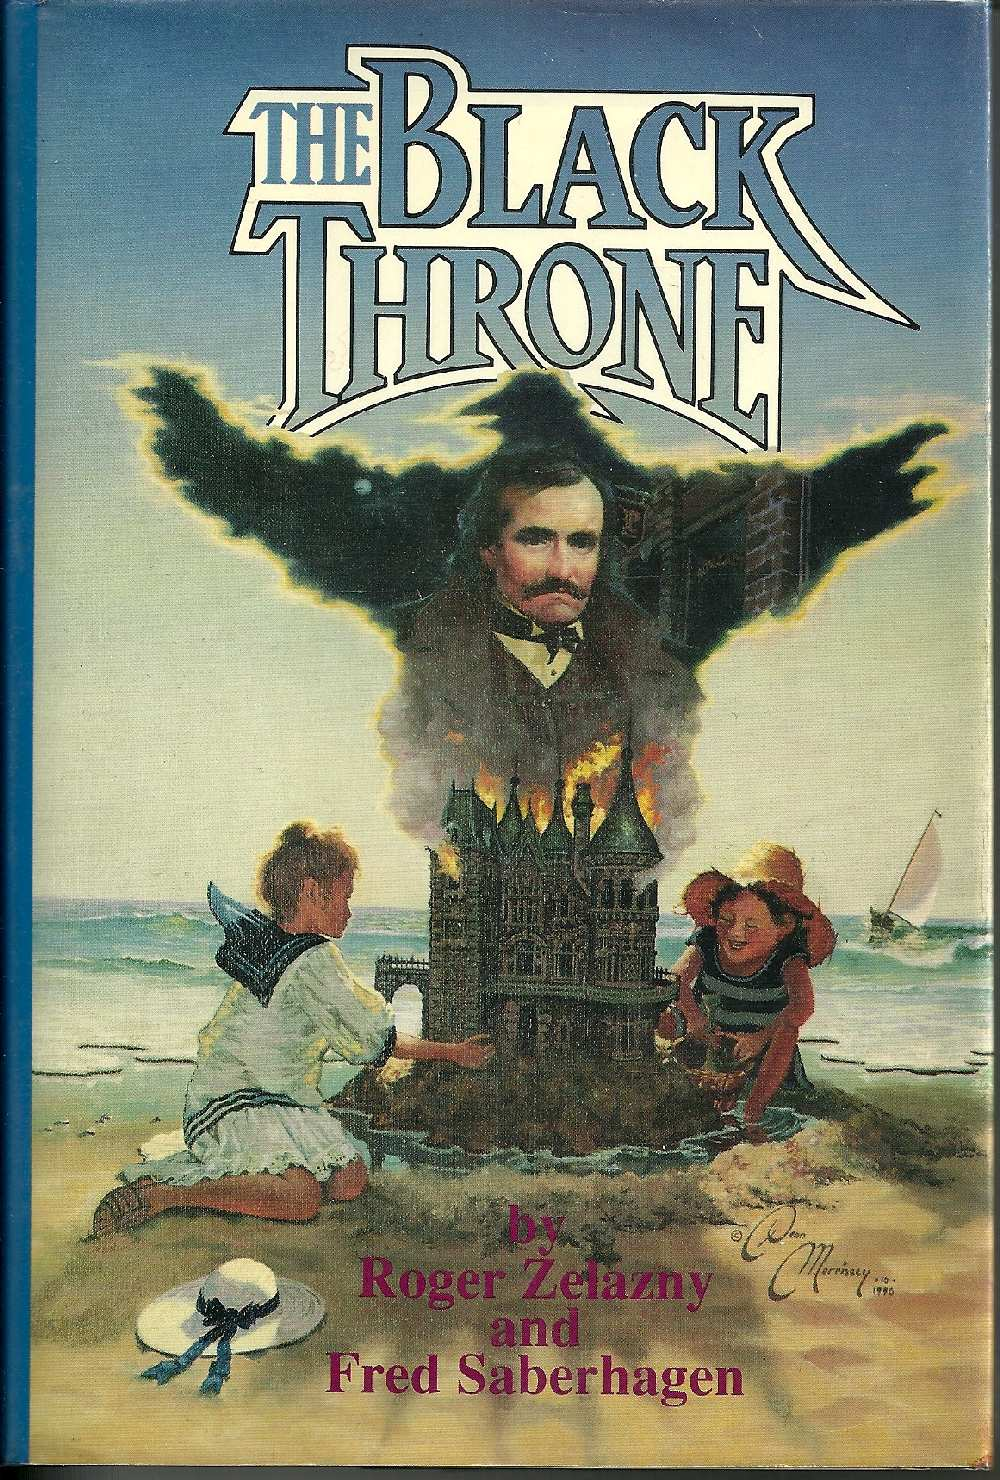 Quoth the Raven, 'nevermore are we babysitting these kids'